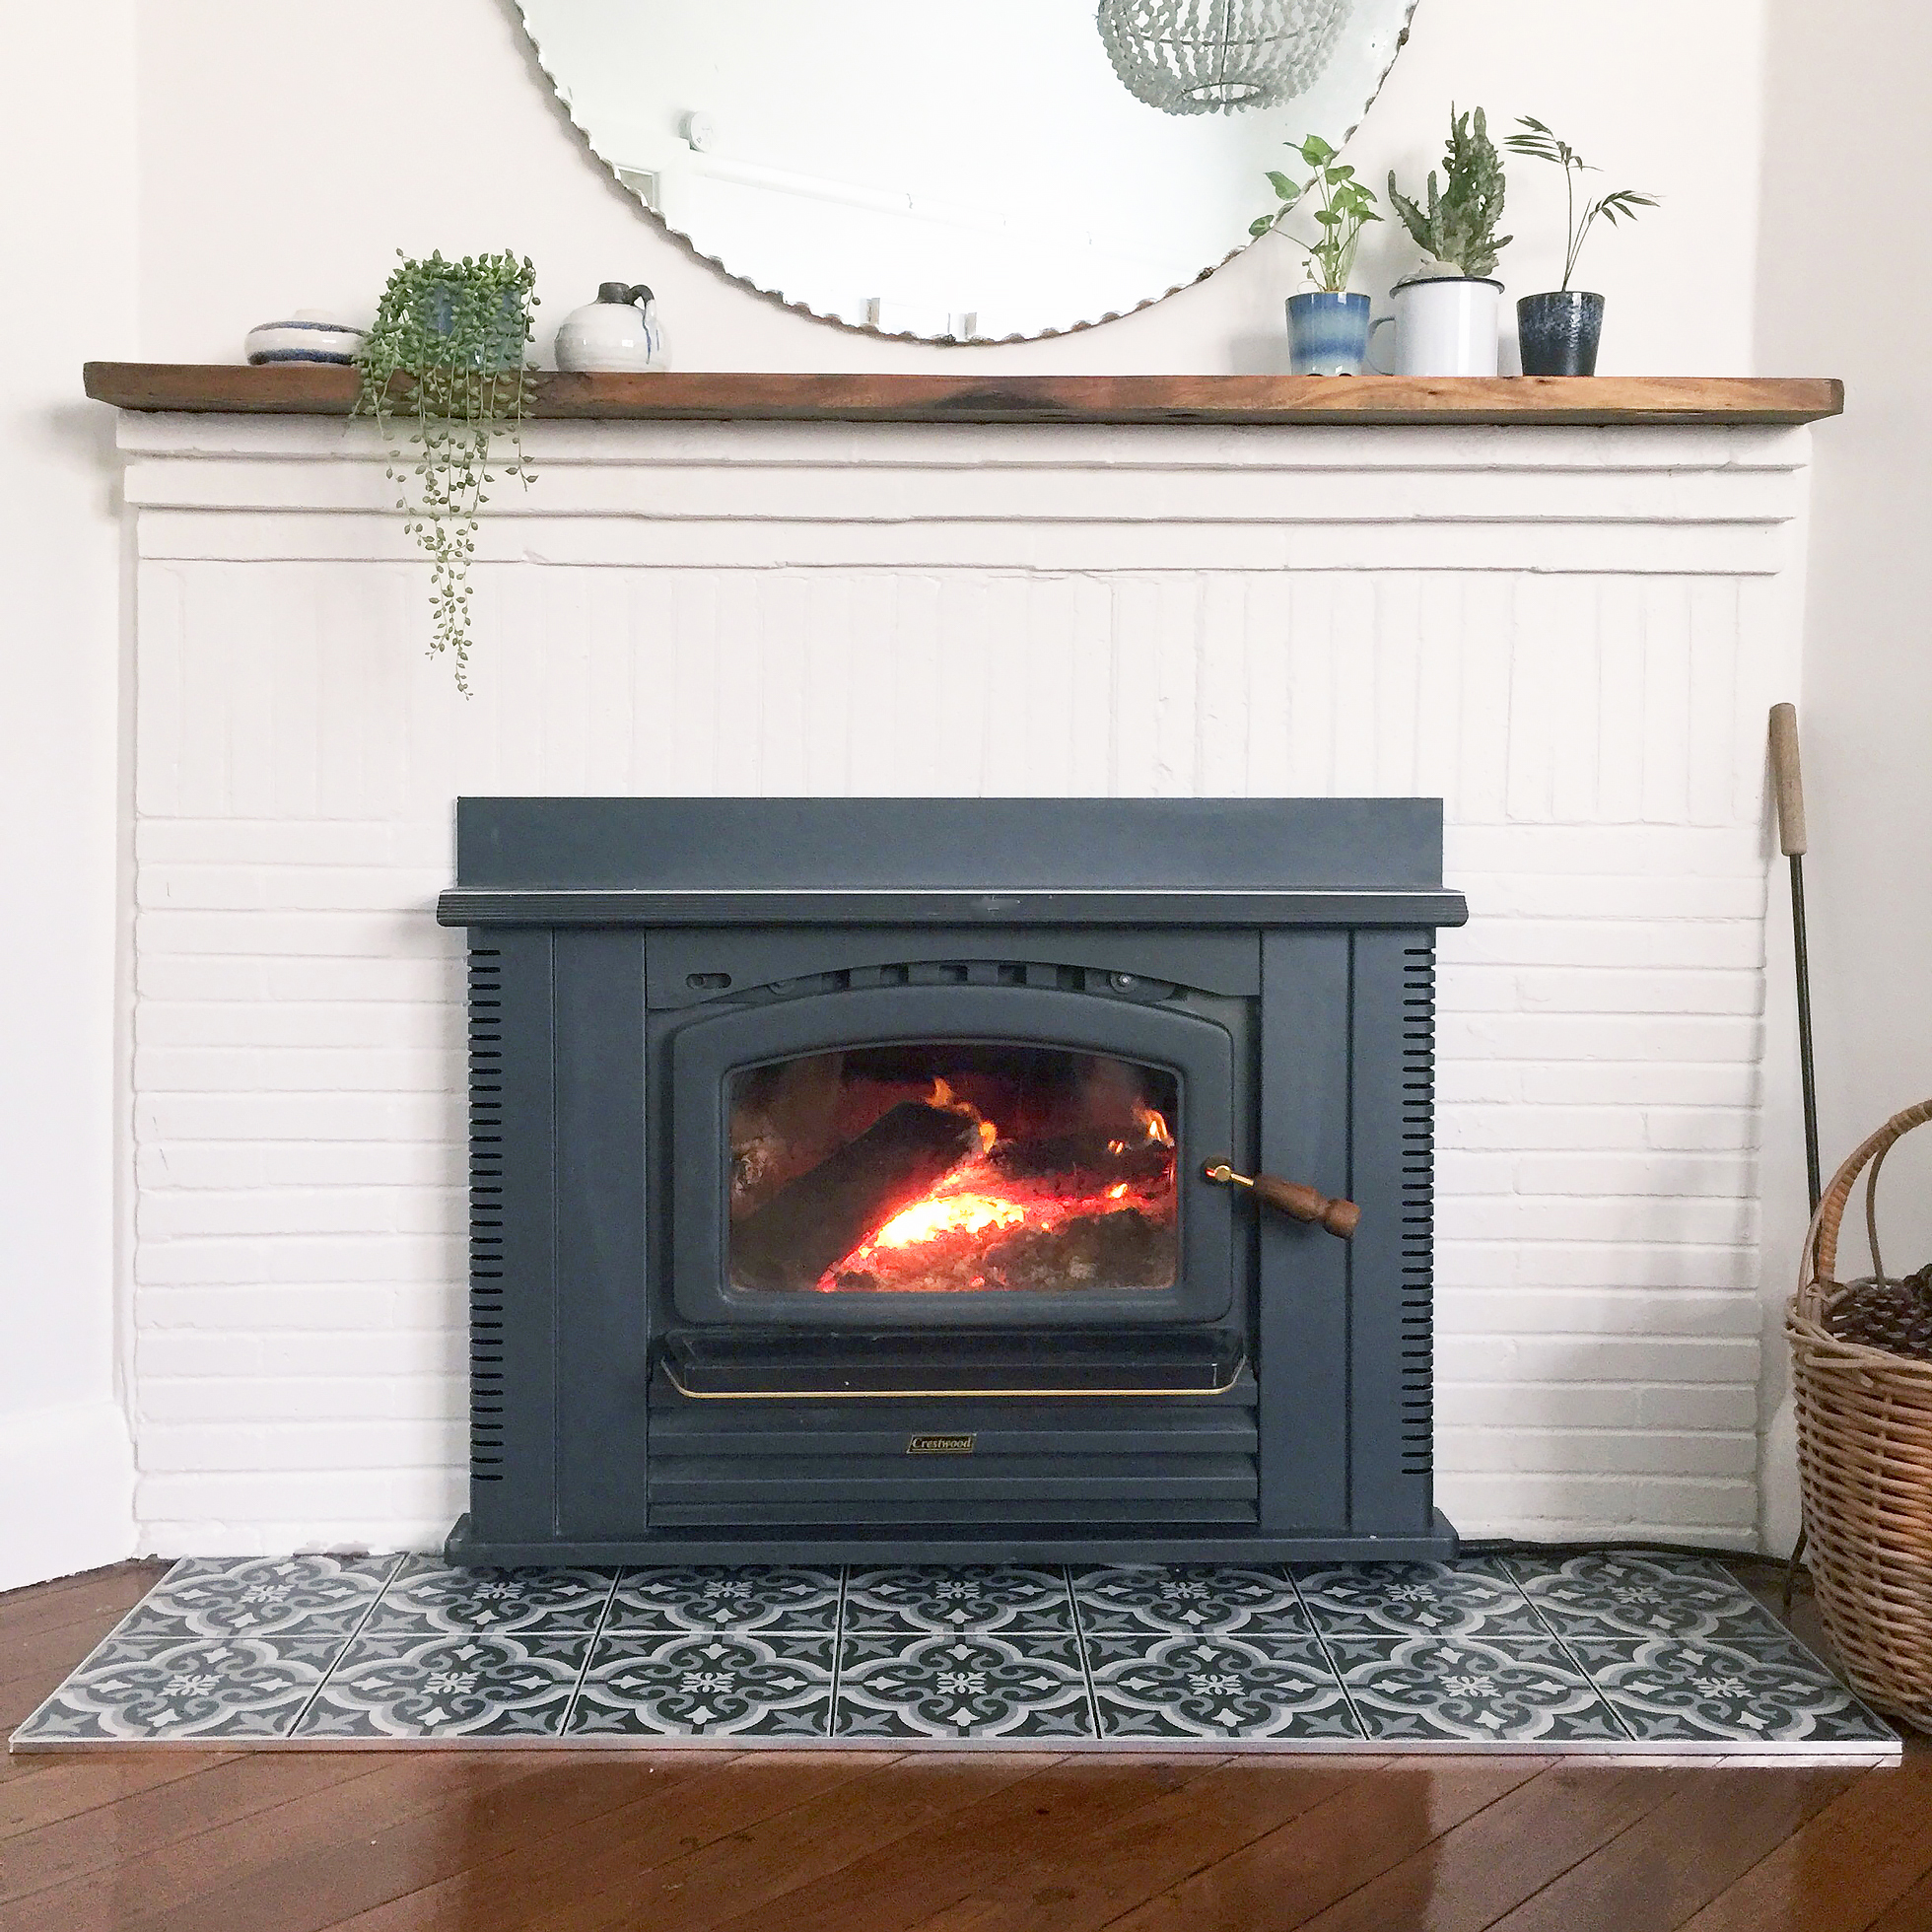 A beige-painted brick fireplace with black slate tiles